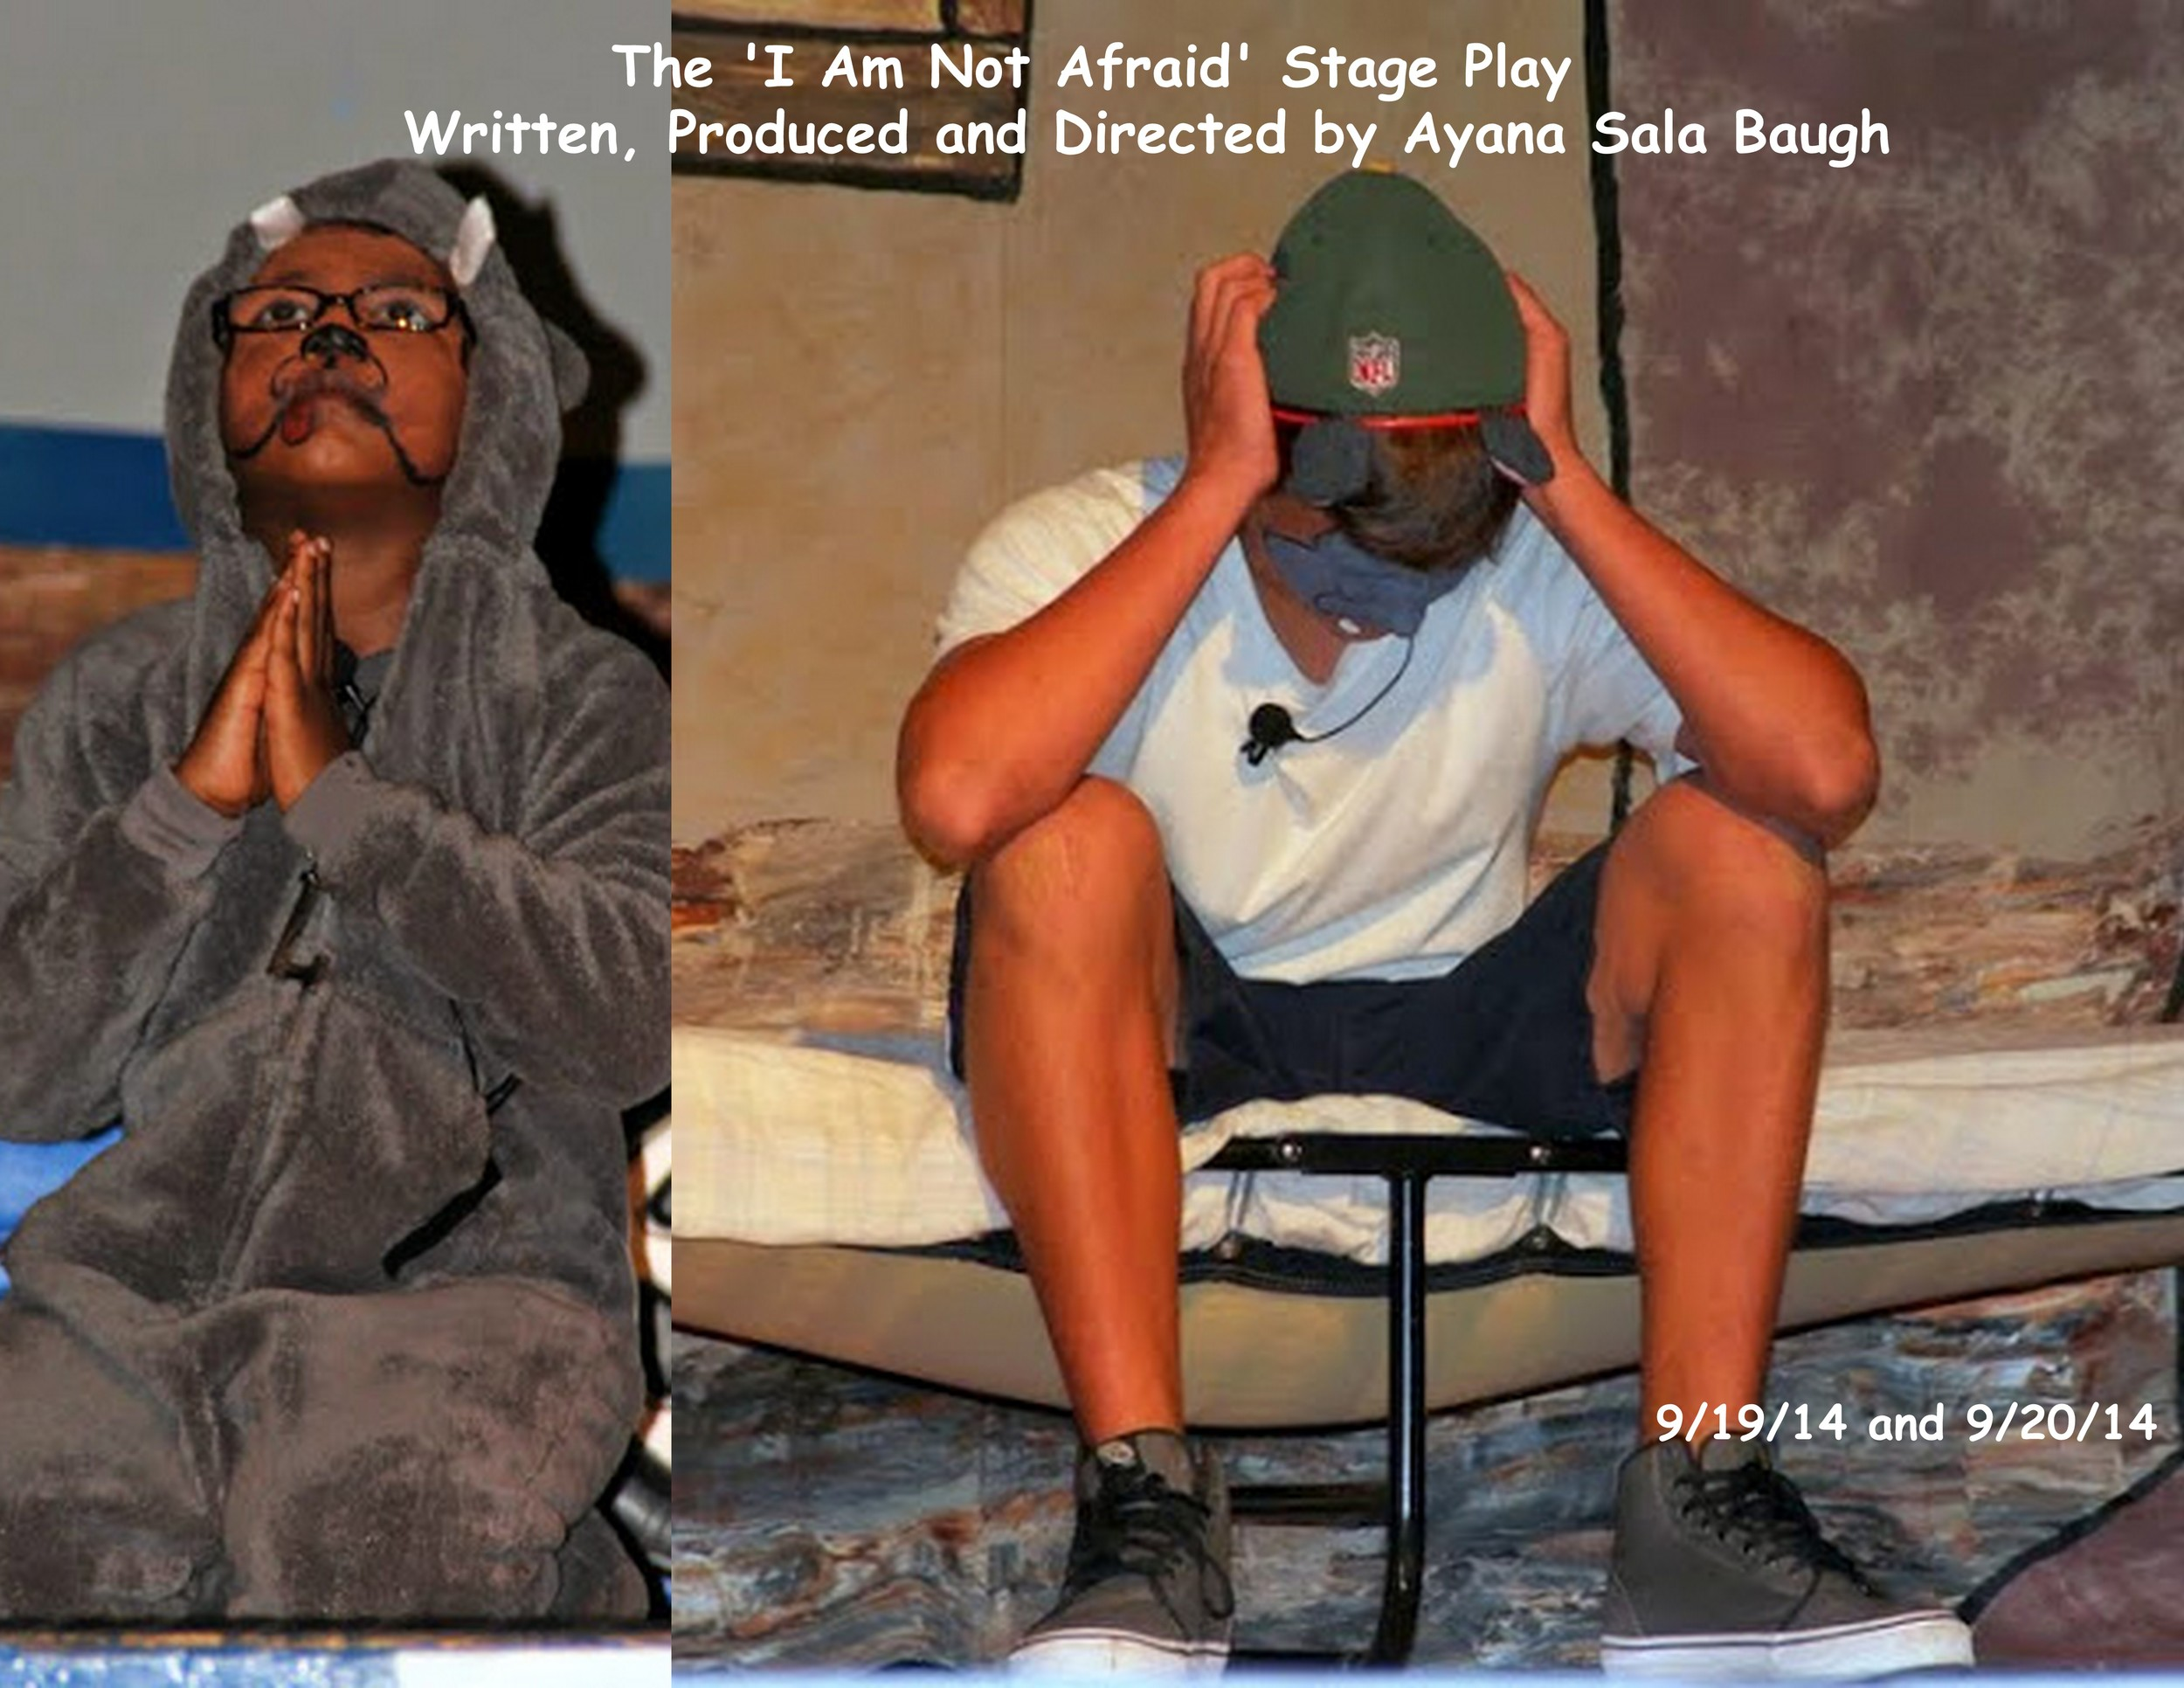 I Am Not Afraid Stage Play Pics 091914 and 0920146 collage 7.jpg